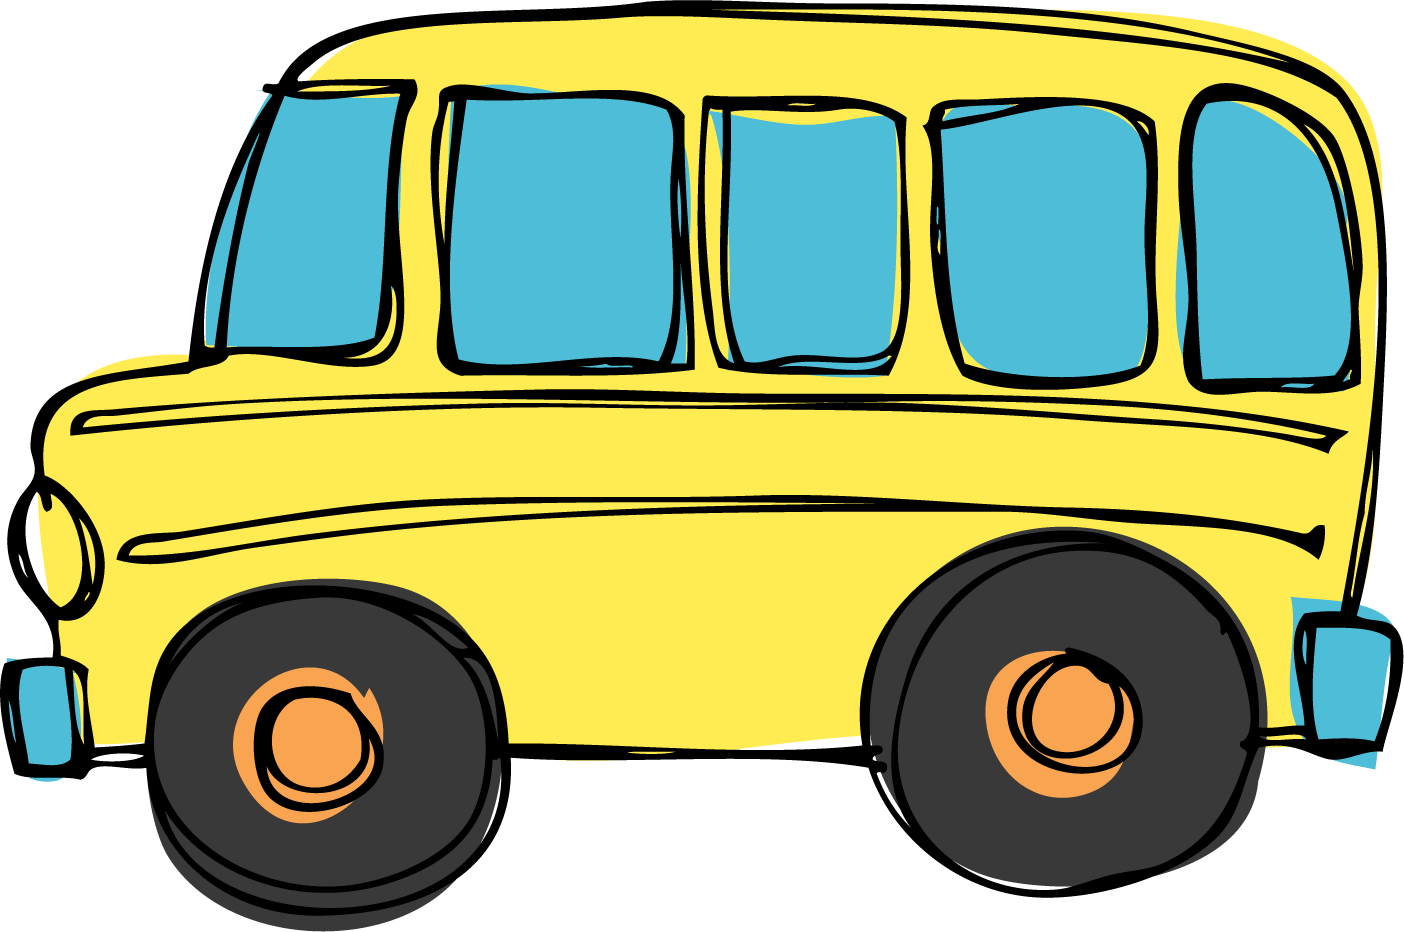 1404x932 School Bus Drawing Png Clipart